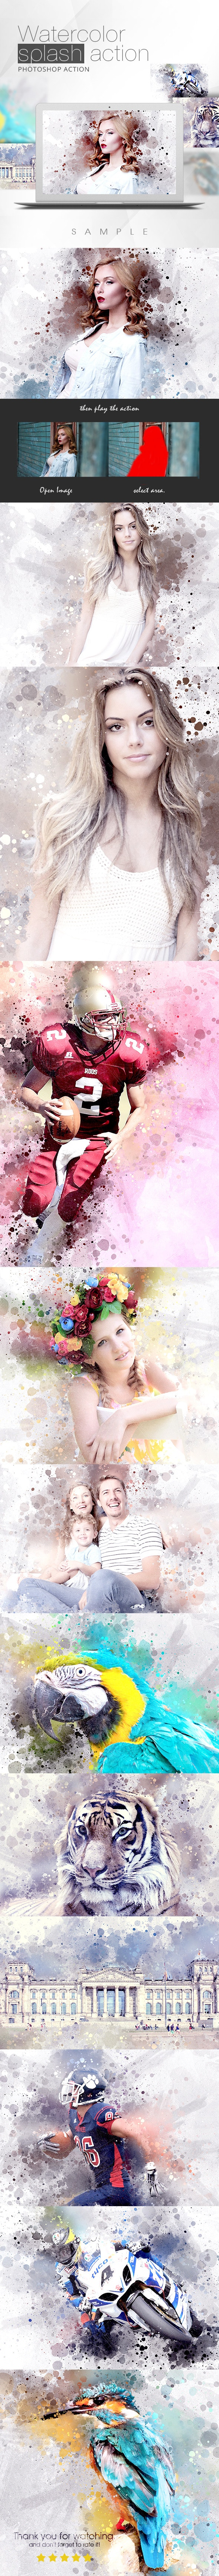 Watercolor Splash Action - Photo Effects Actions